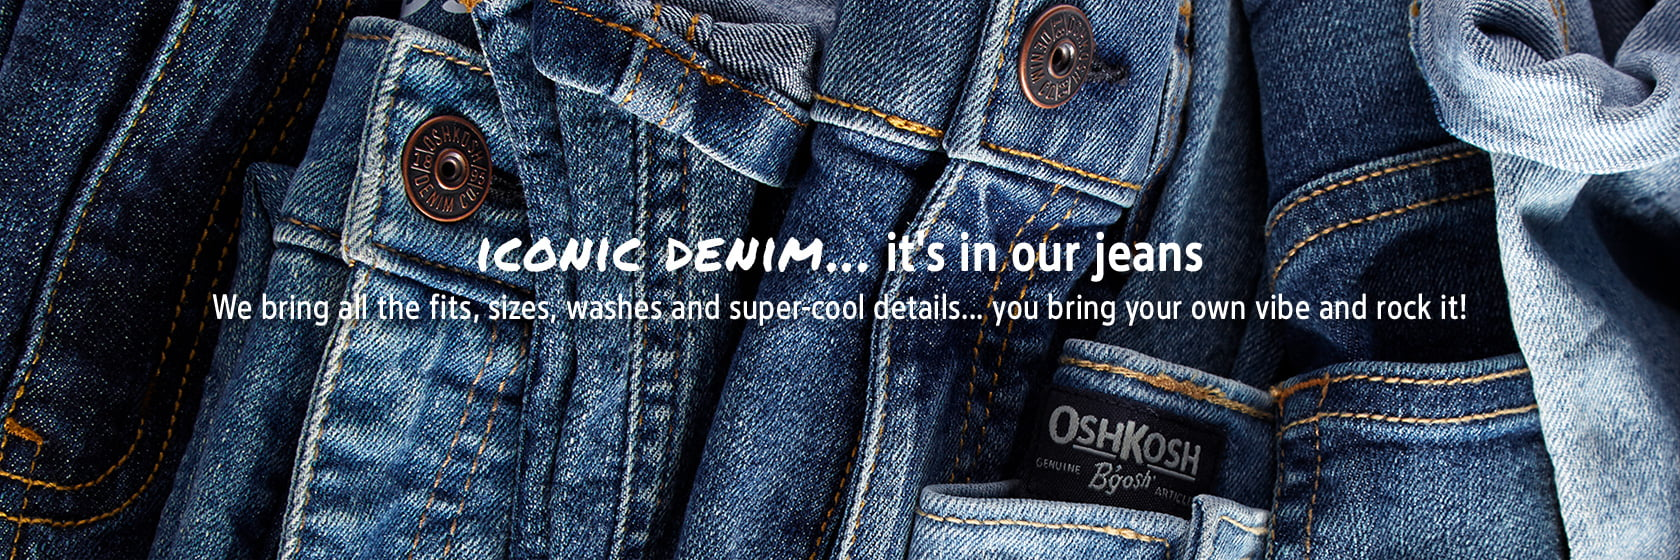 ICONIC DENIM...it's in our jeans   We bring all the fits, sizes, washes and super-cool details...your bring your own vibe and rock it!